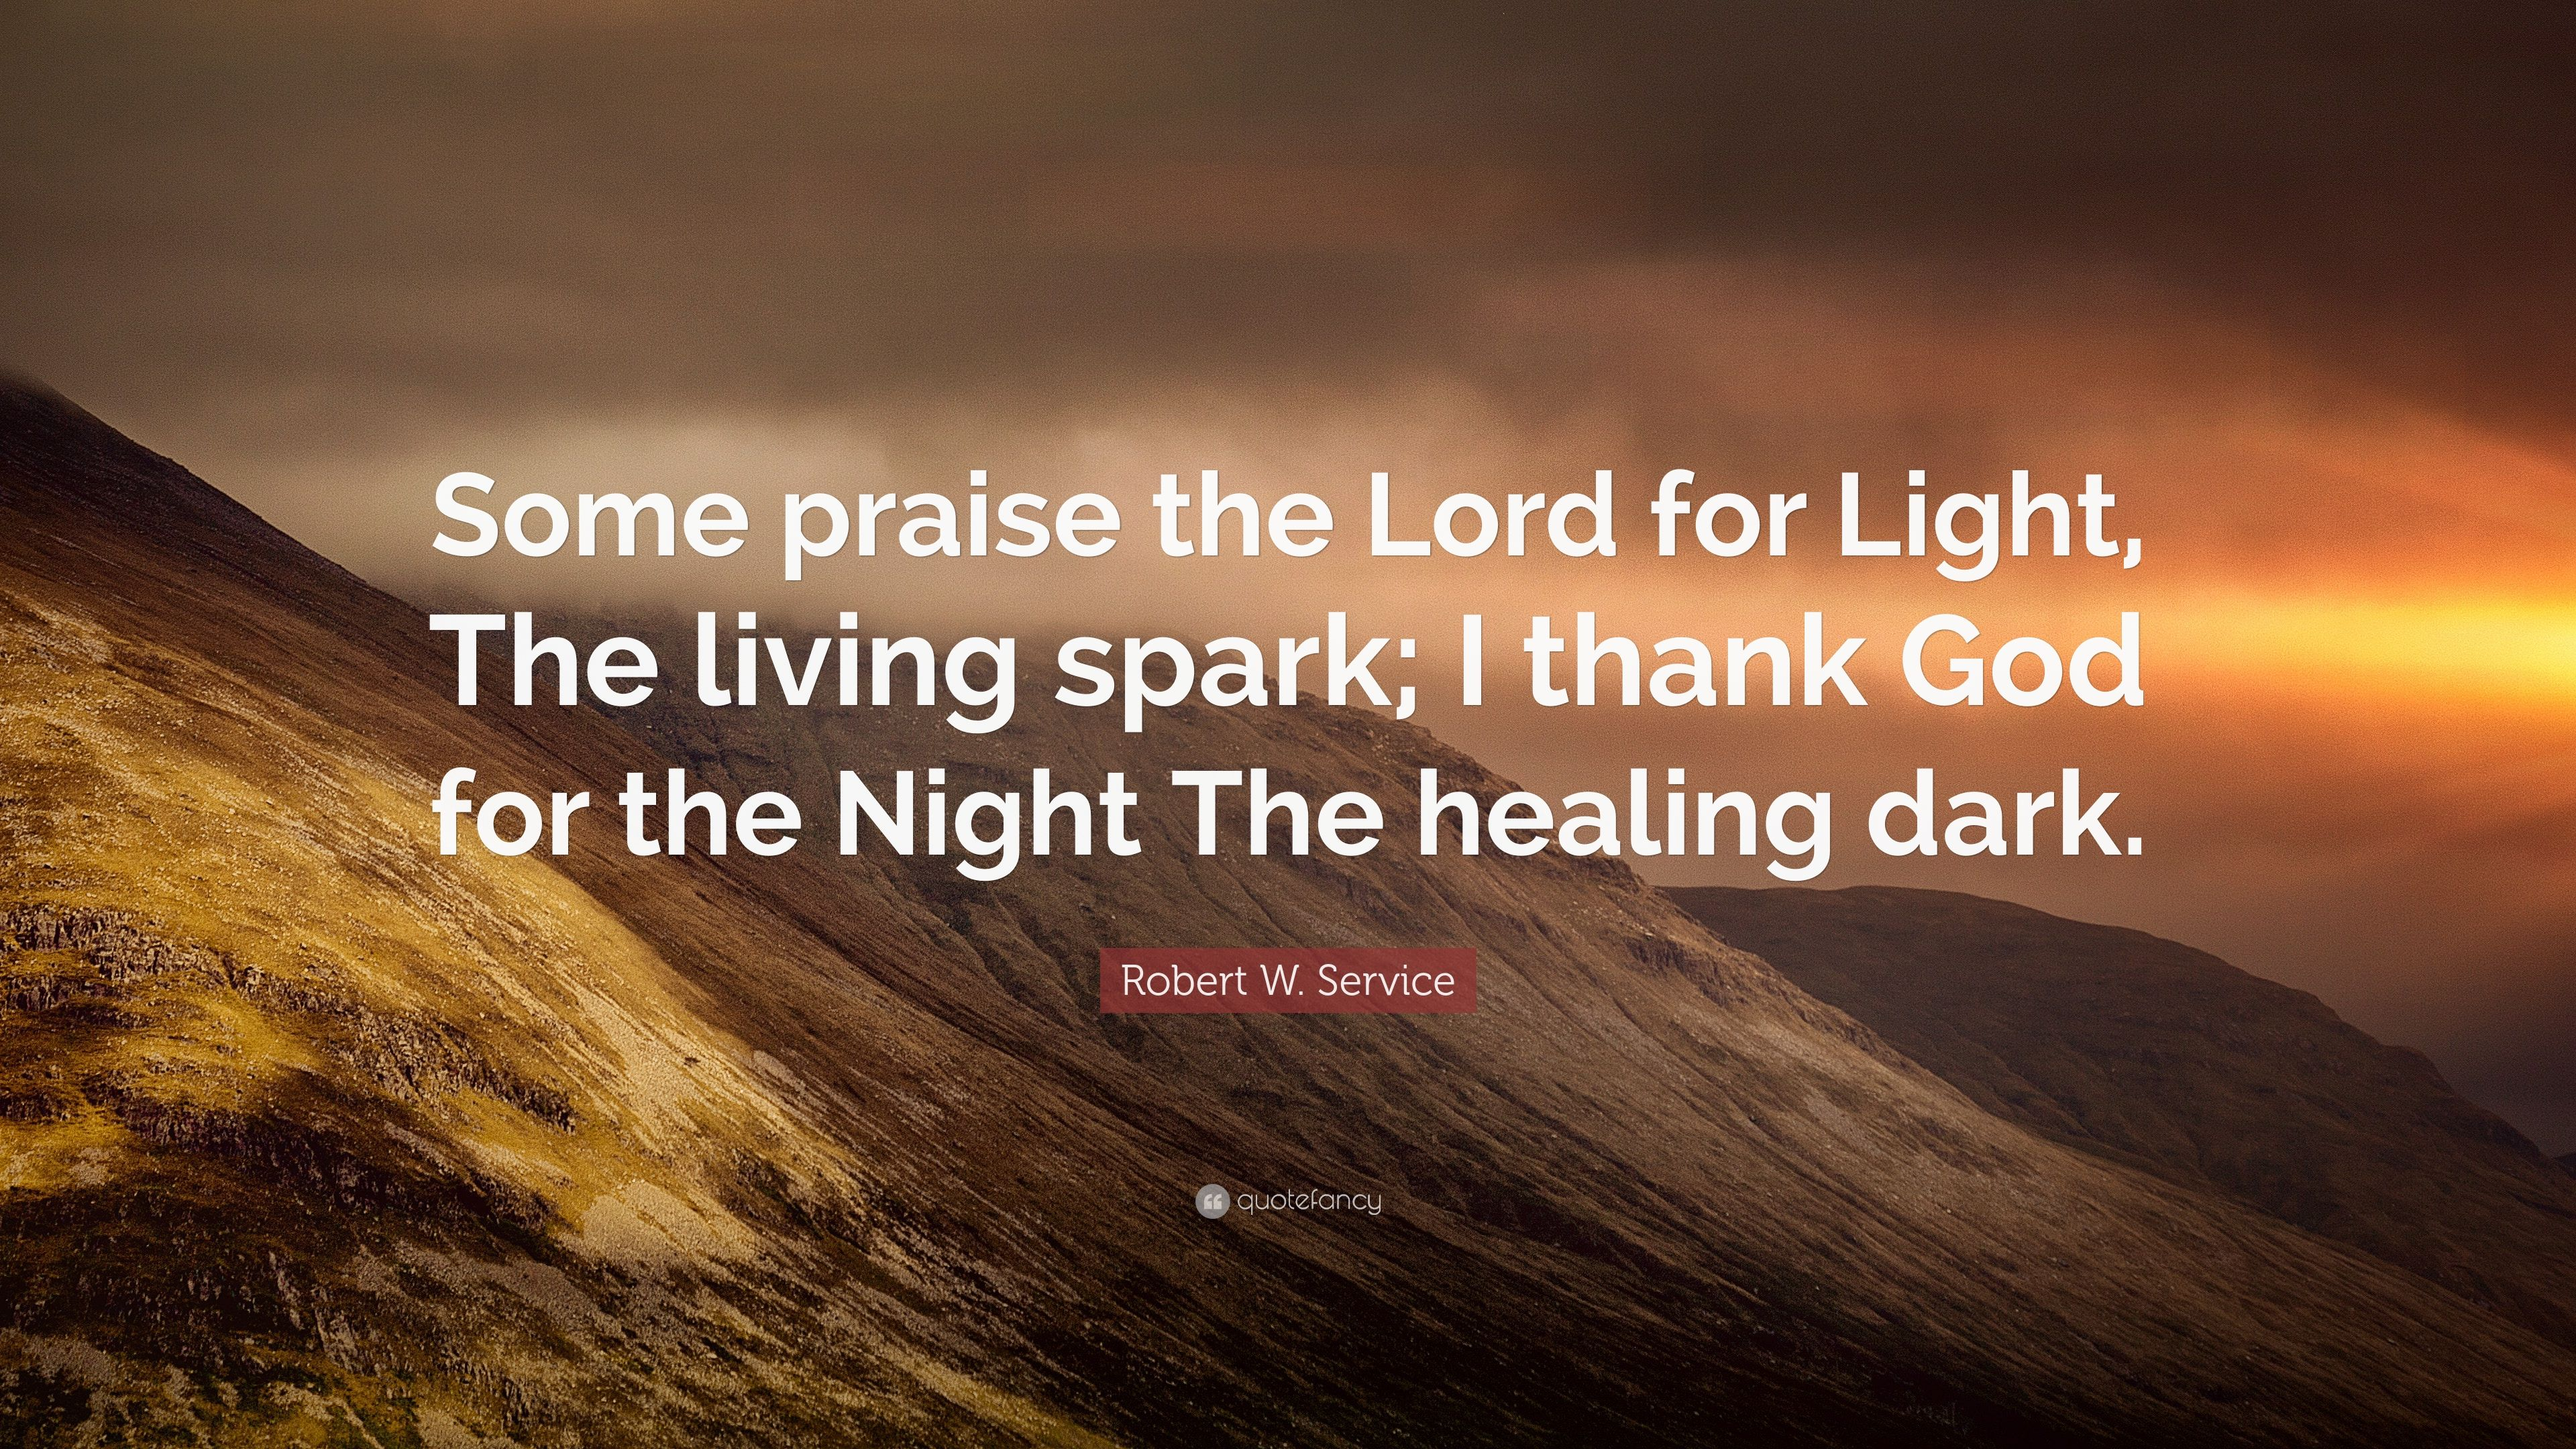 Most Inspiring Wallpaper Lord Light - 5054734-Robert-W-Service-Quote-Some-praise-the-Lord-for-Light-The-living  Graphic_45661.jpg